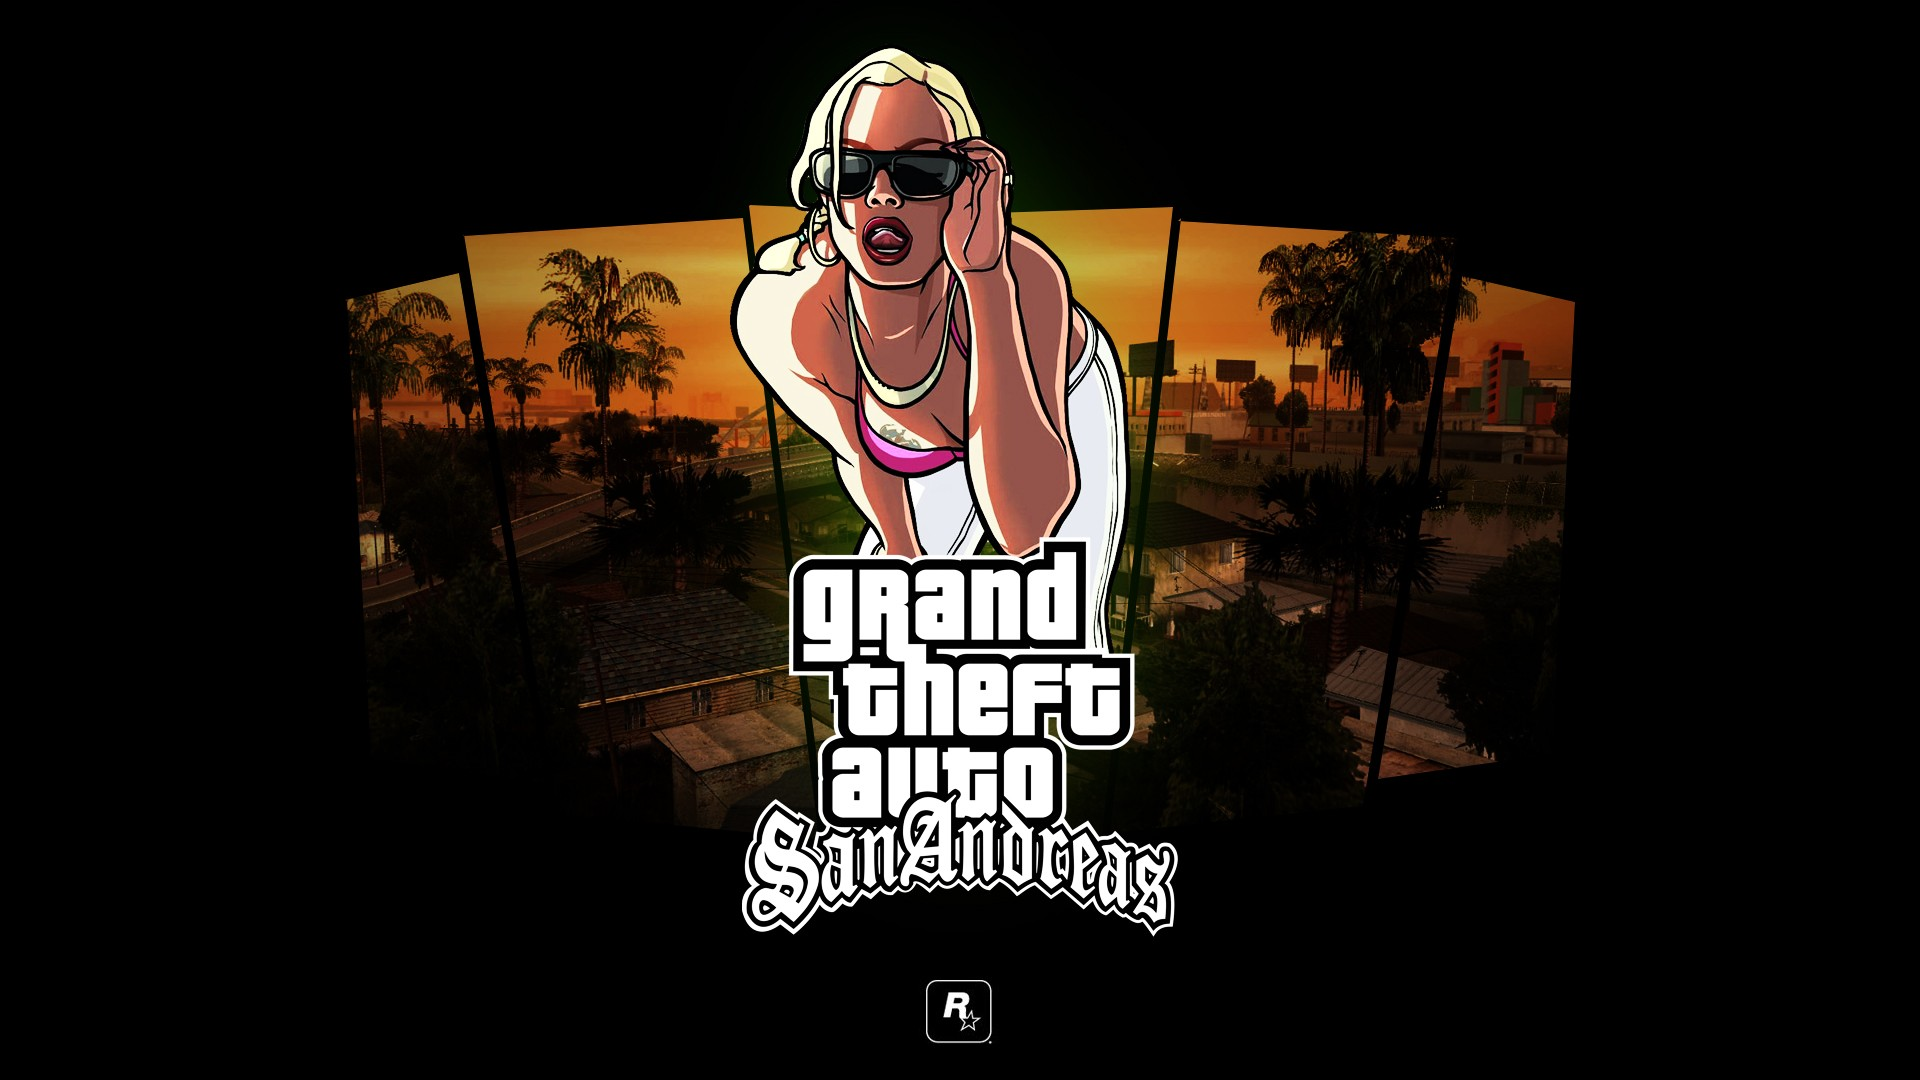 gta san andreas, hd games, 4k wallpapers, images, backgrounds